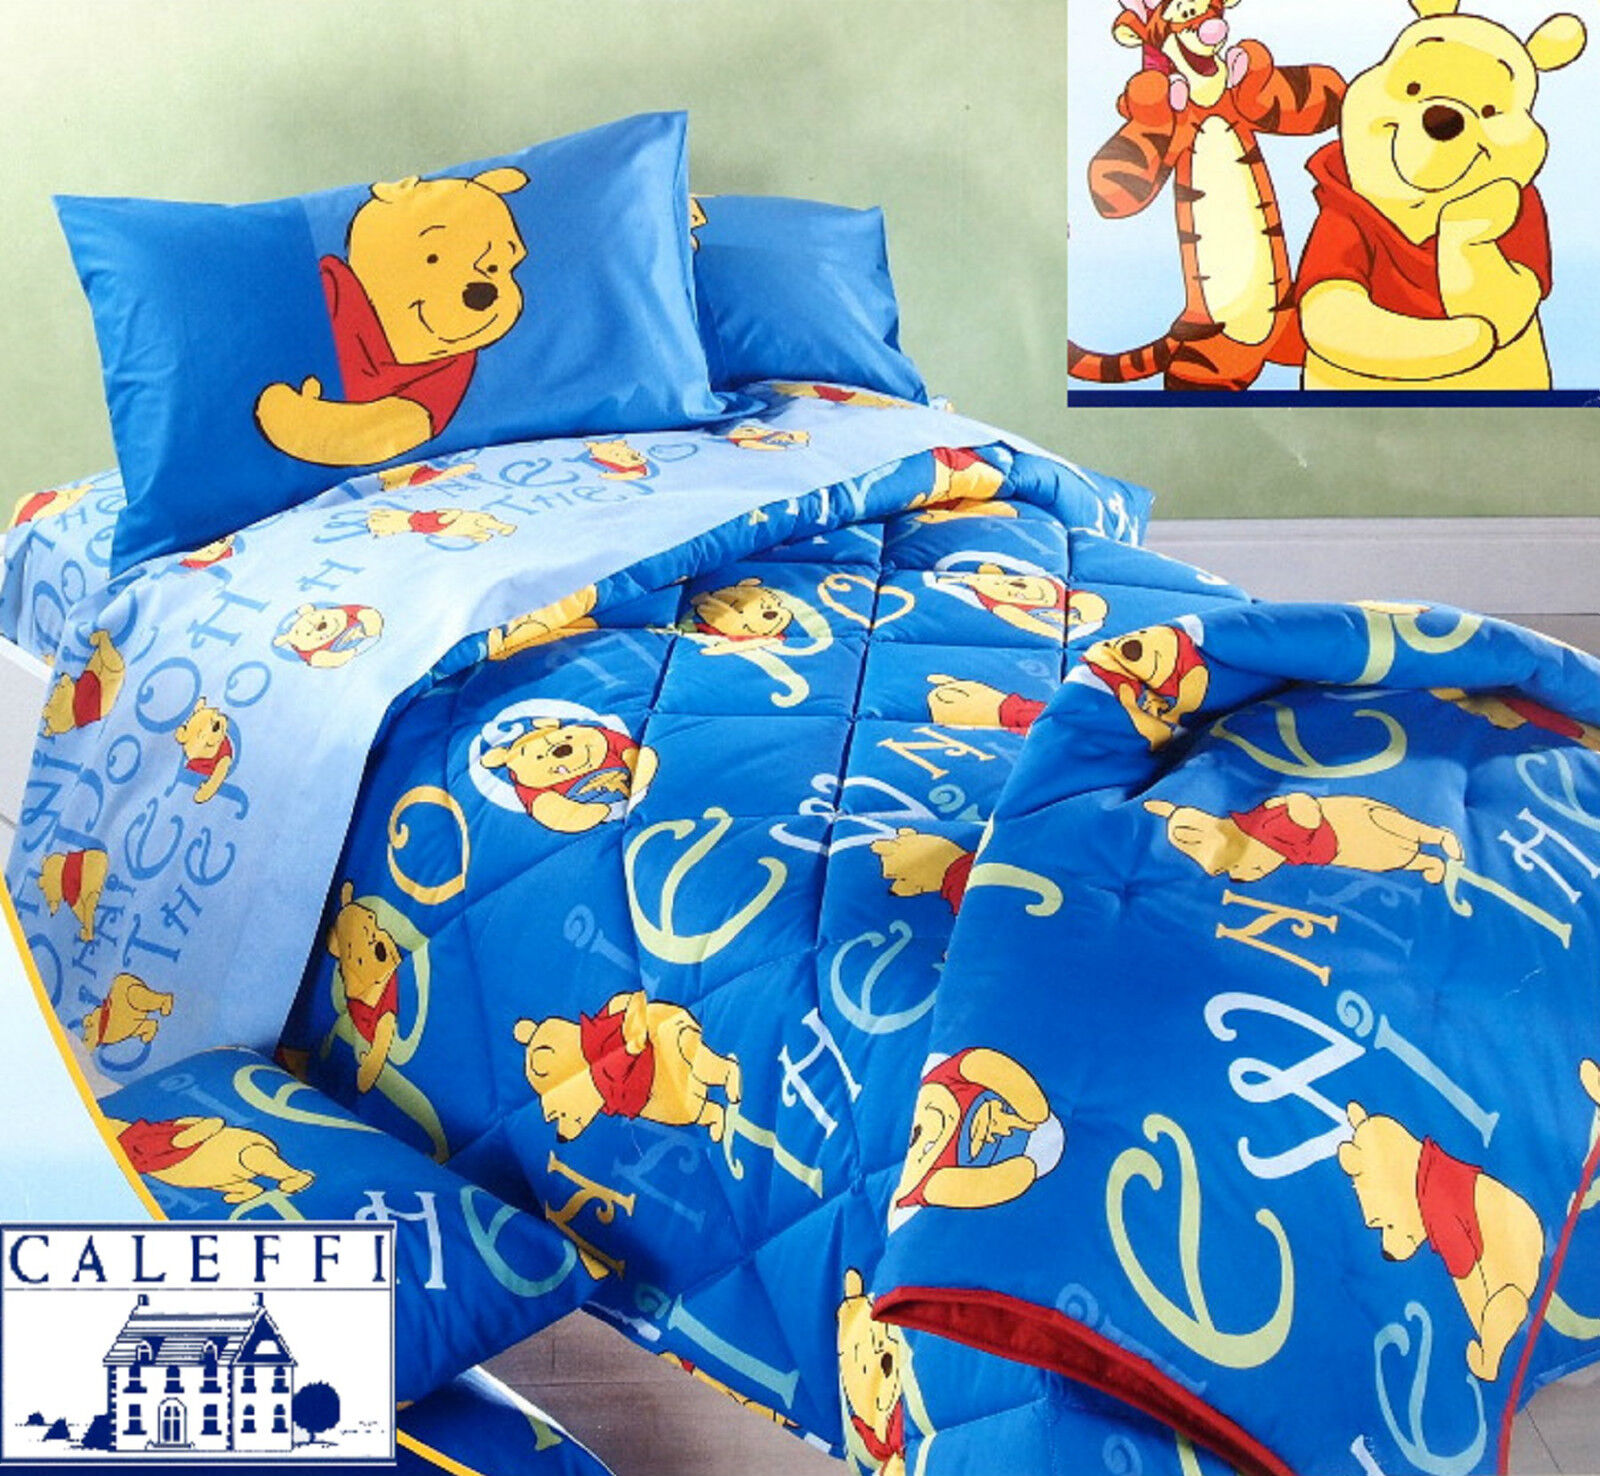 Copriletto Winnie The Pooh Caleffi.Details About Quilt Winter Disney Caleffi Pooh Delicious Single And Small Double